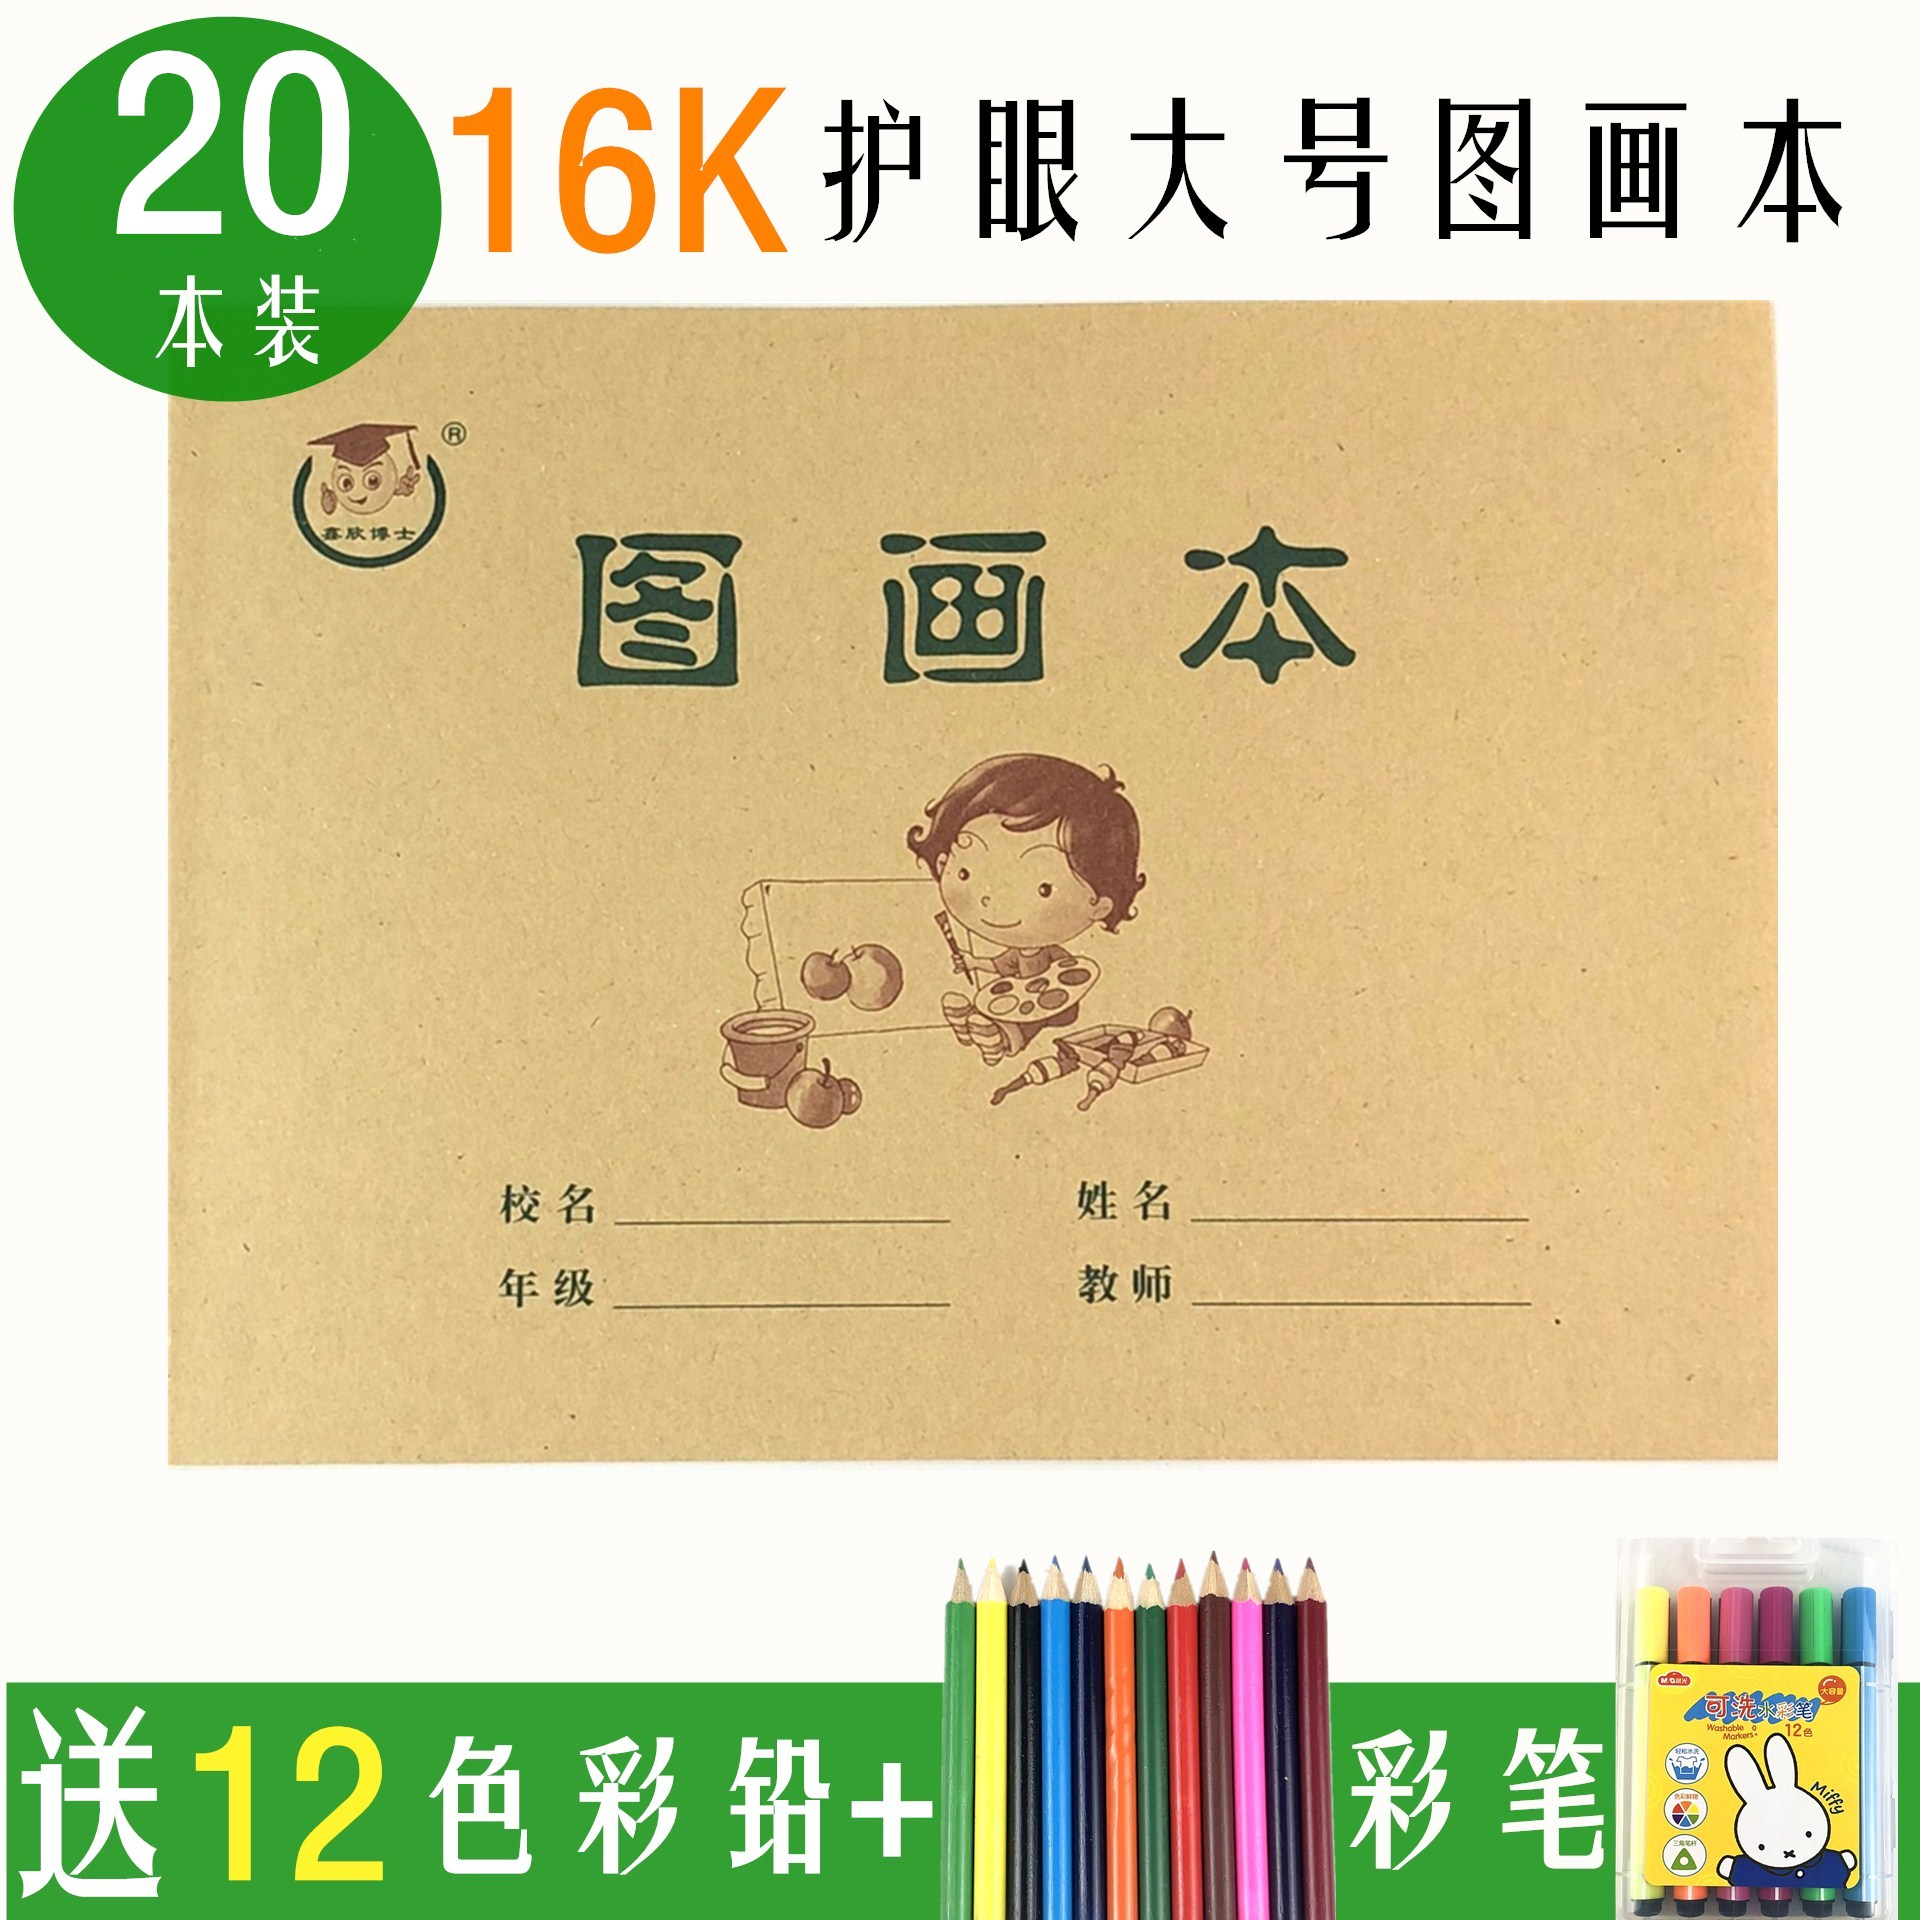 16K LARGE PICTURE BOOK (20 COPIES) TO SEND MORNING LIGHT 12 COLOR WATERCOLOR PEN